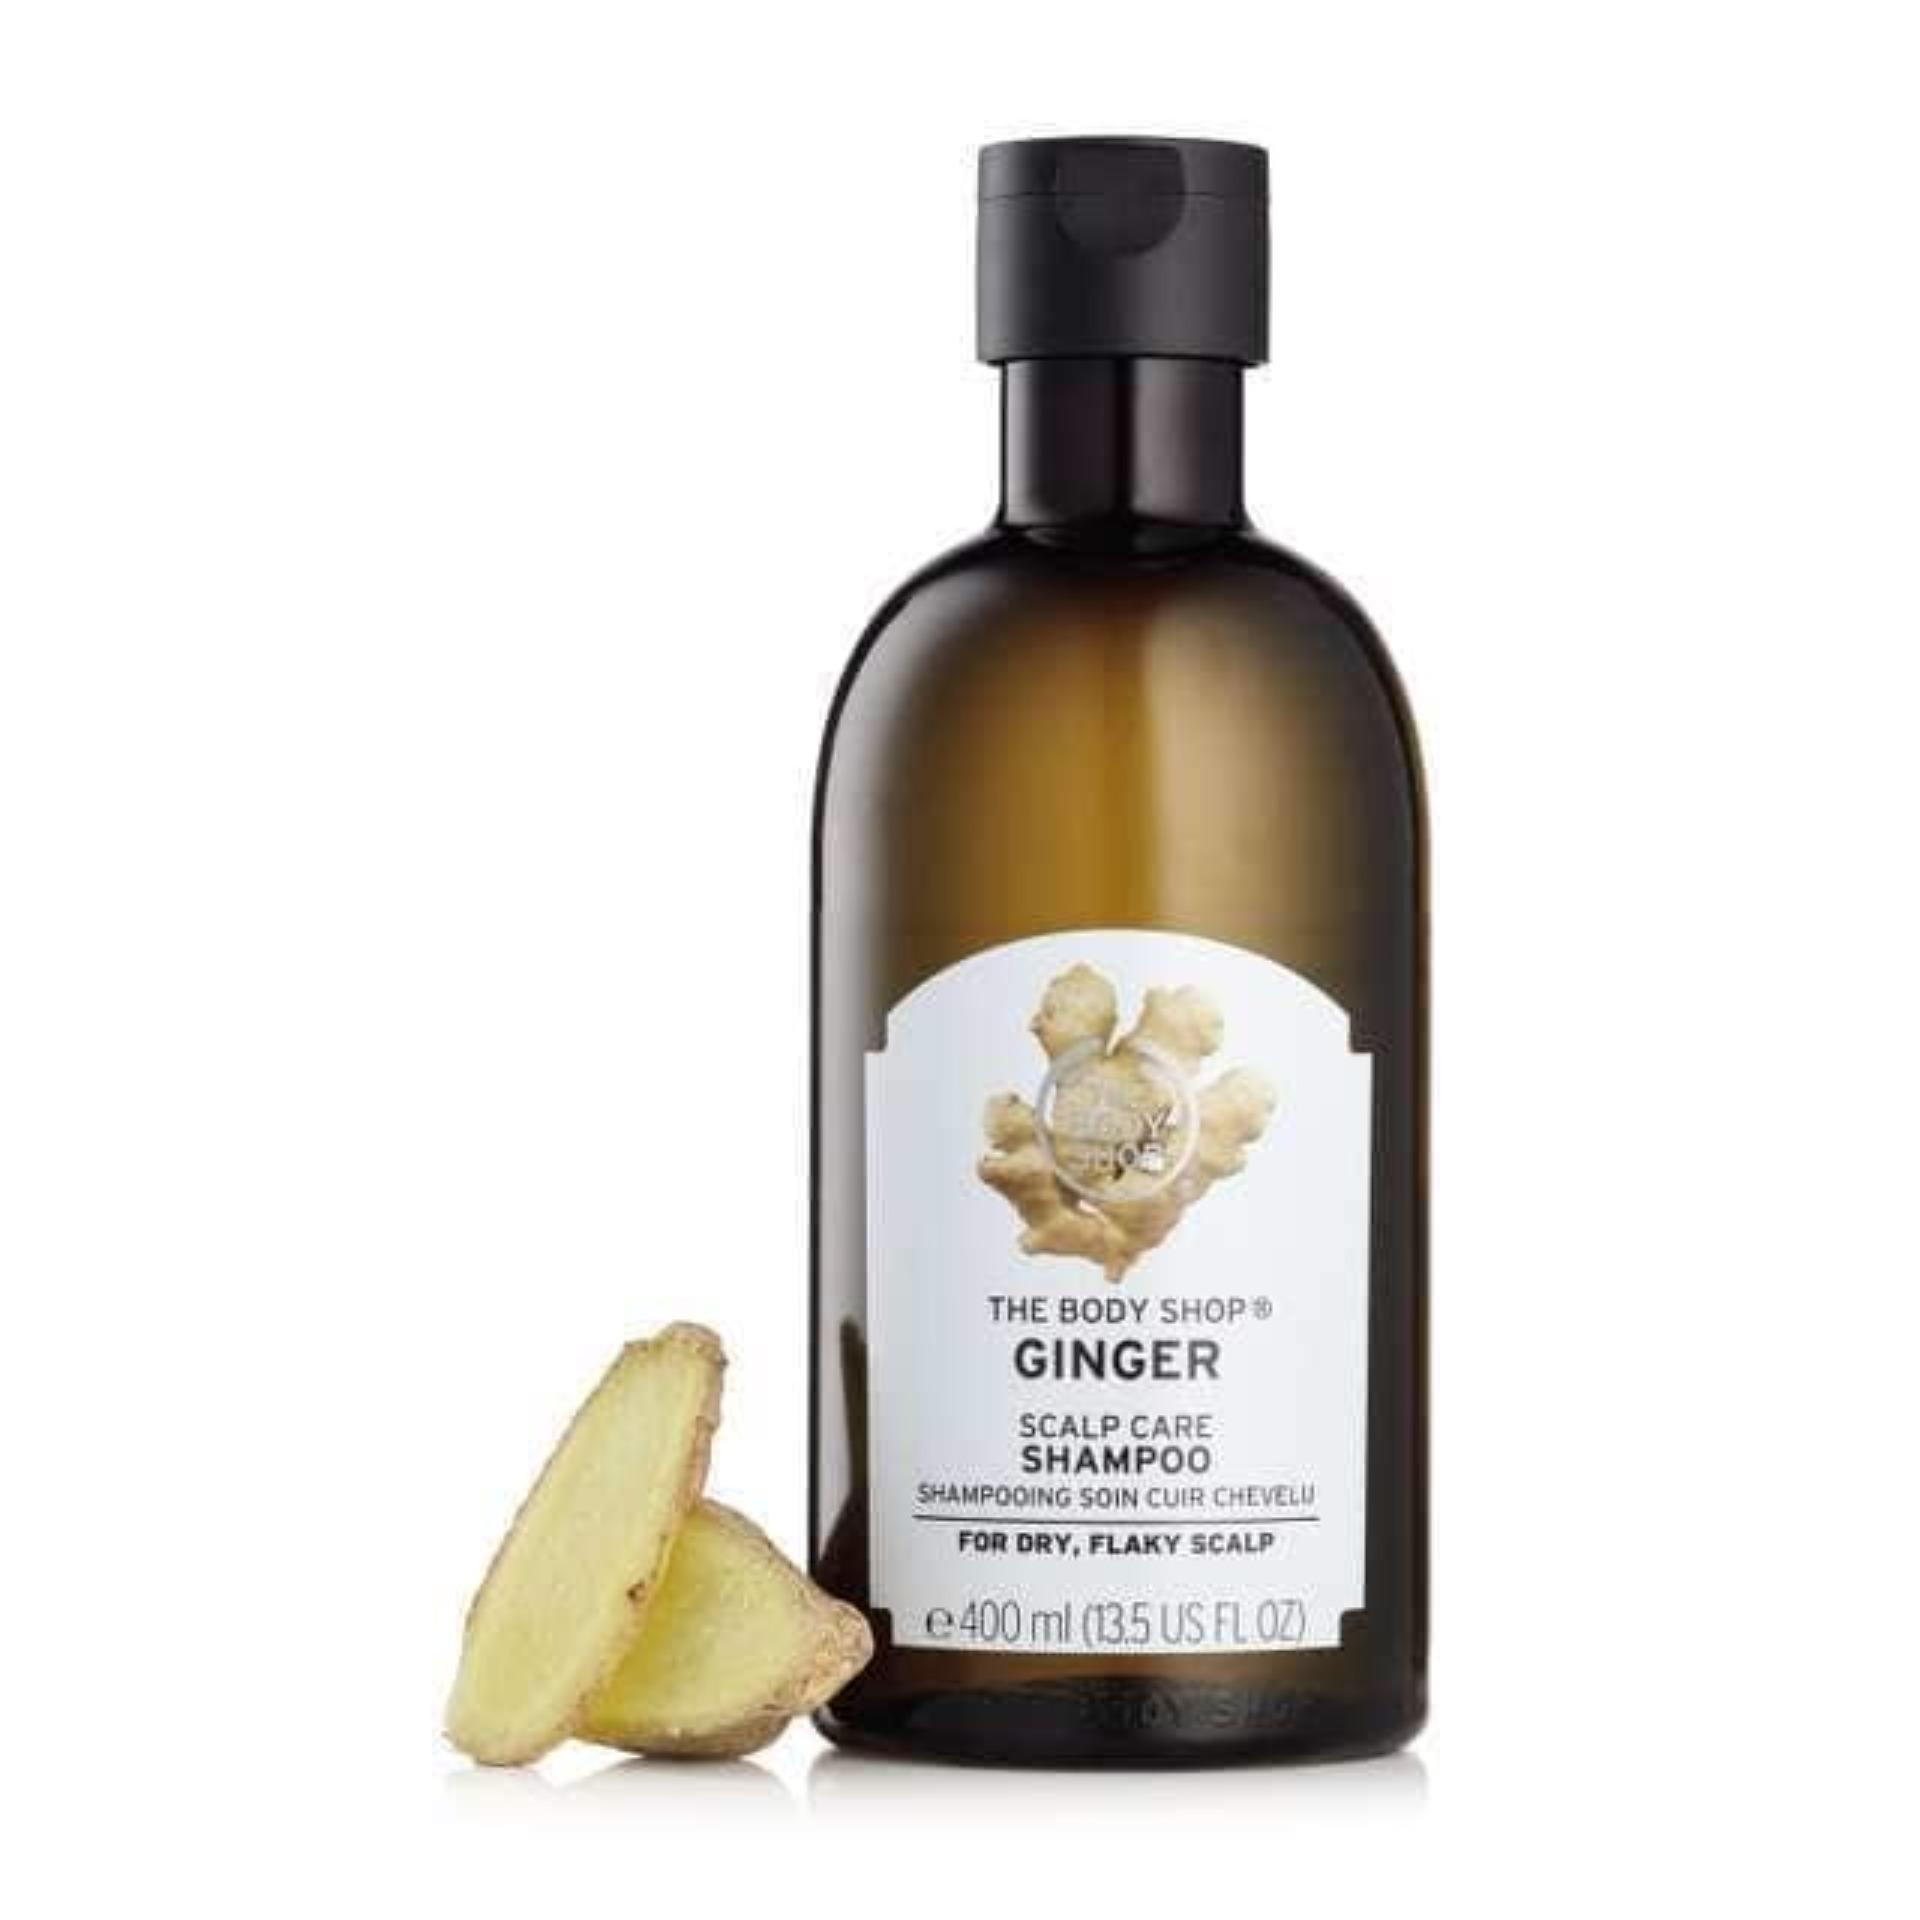 The Body Shop Ginger Anti-Dandruff Shampoo(400ml) By The Body Shop.